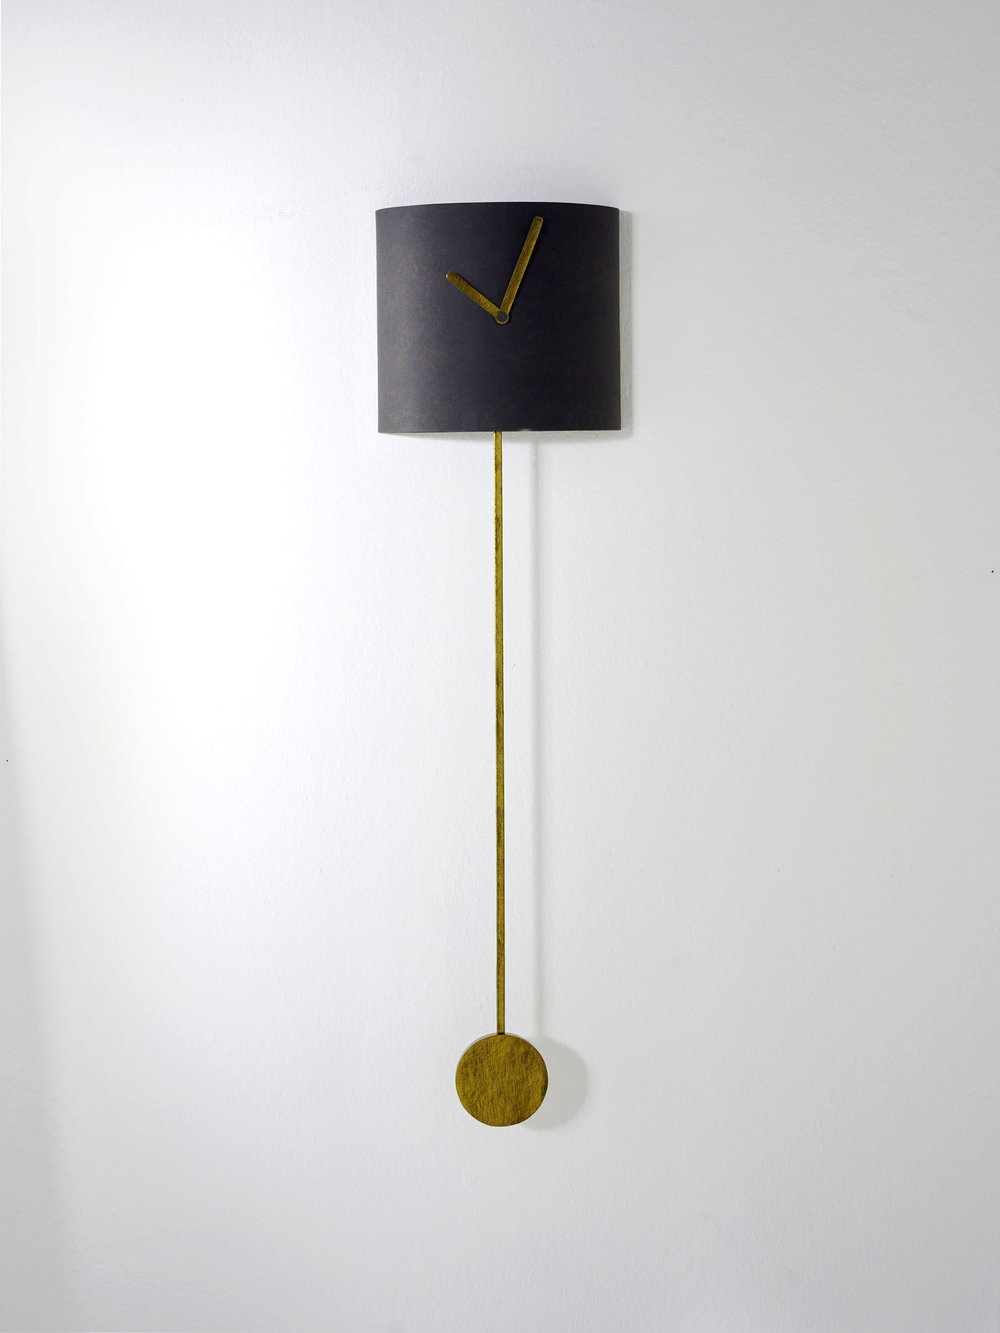 Halfpipe - width: 25.5cm depth: 13cmlength with pendulum: 97.5cmBody in black.Clock hands and pendulum in old gold.Each clock is made by hand.